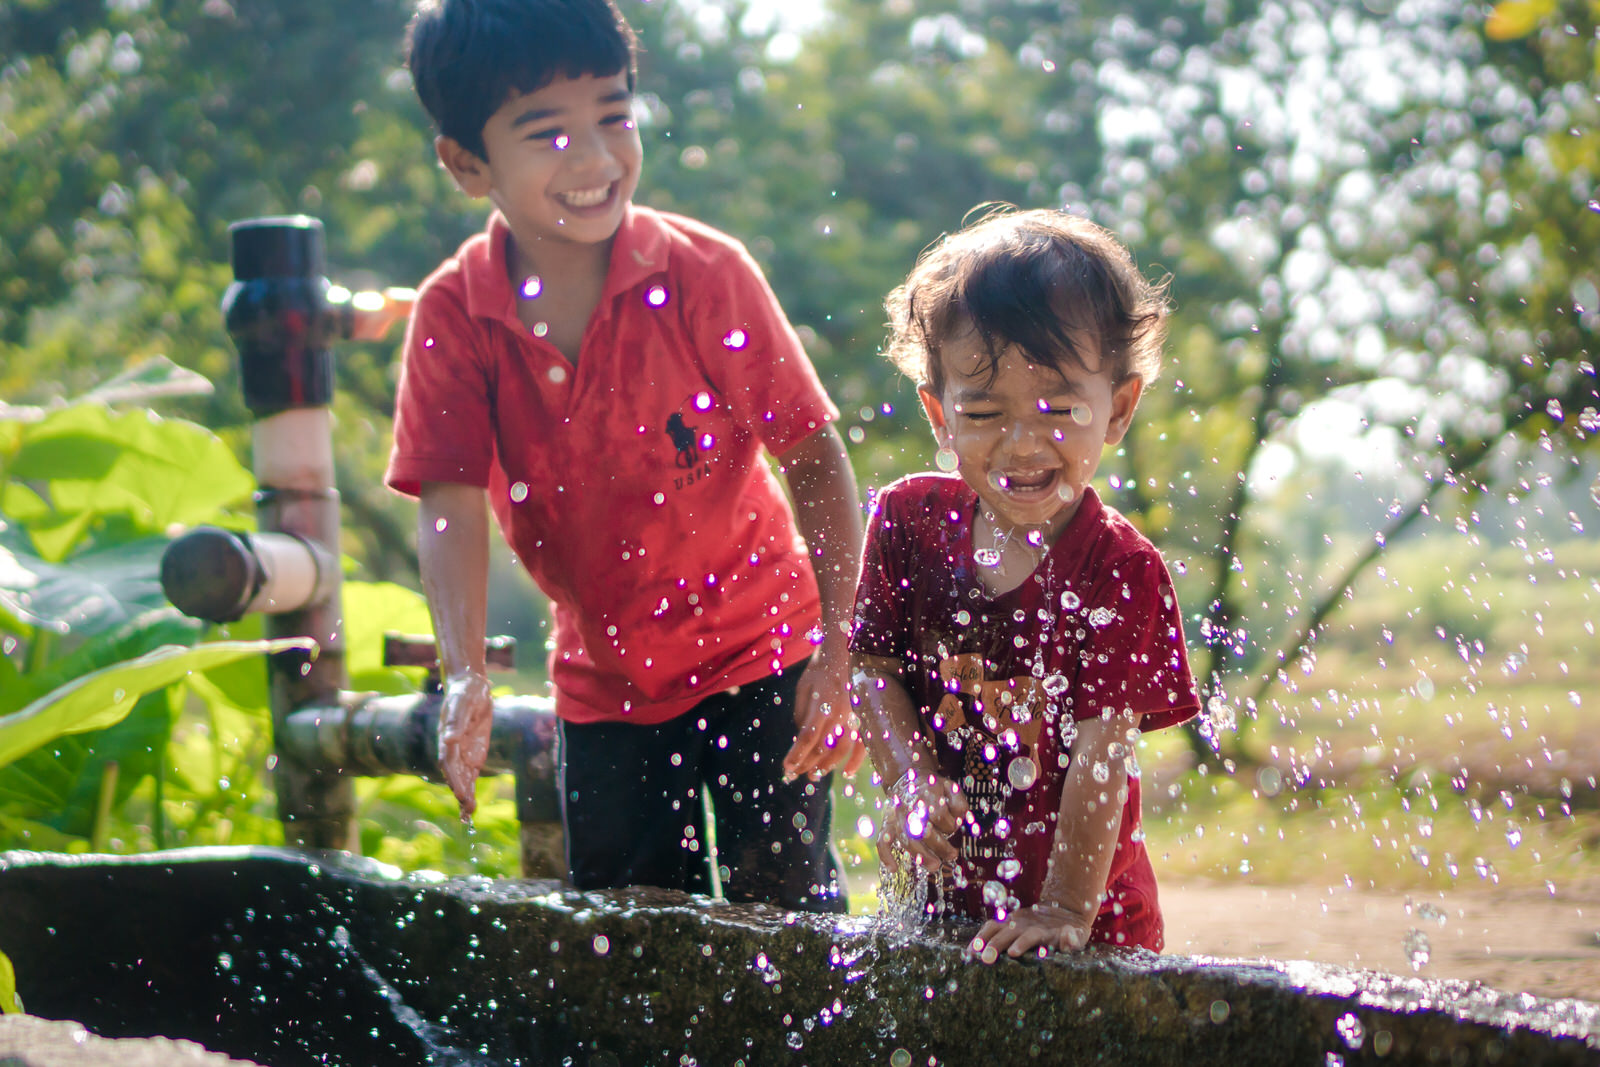 23122017-Boys-Playing-Water-Tank-188.jpg